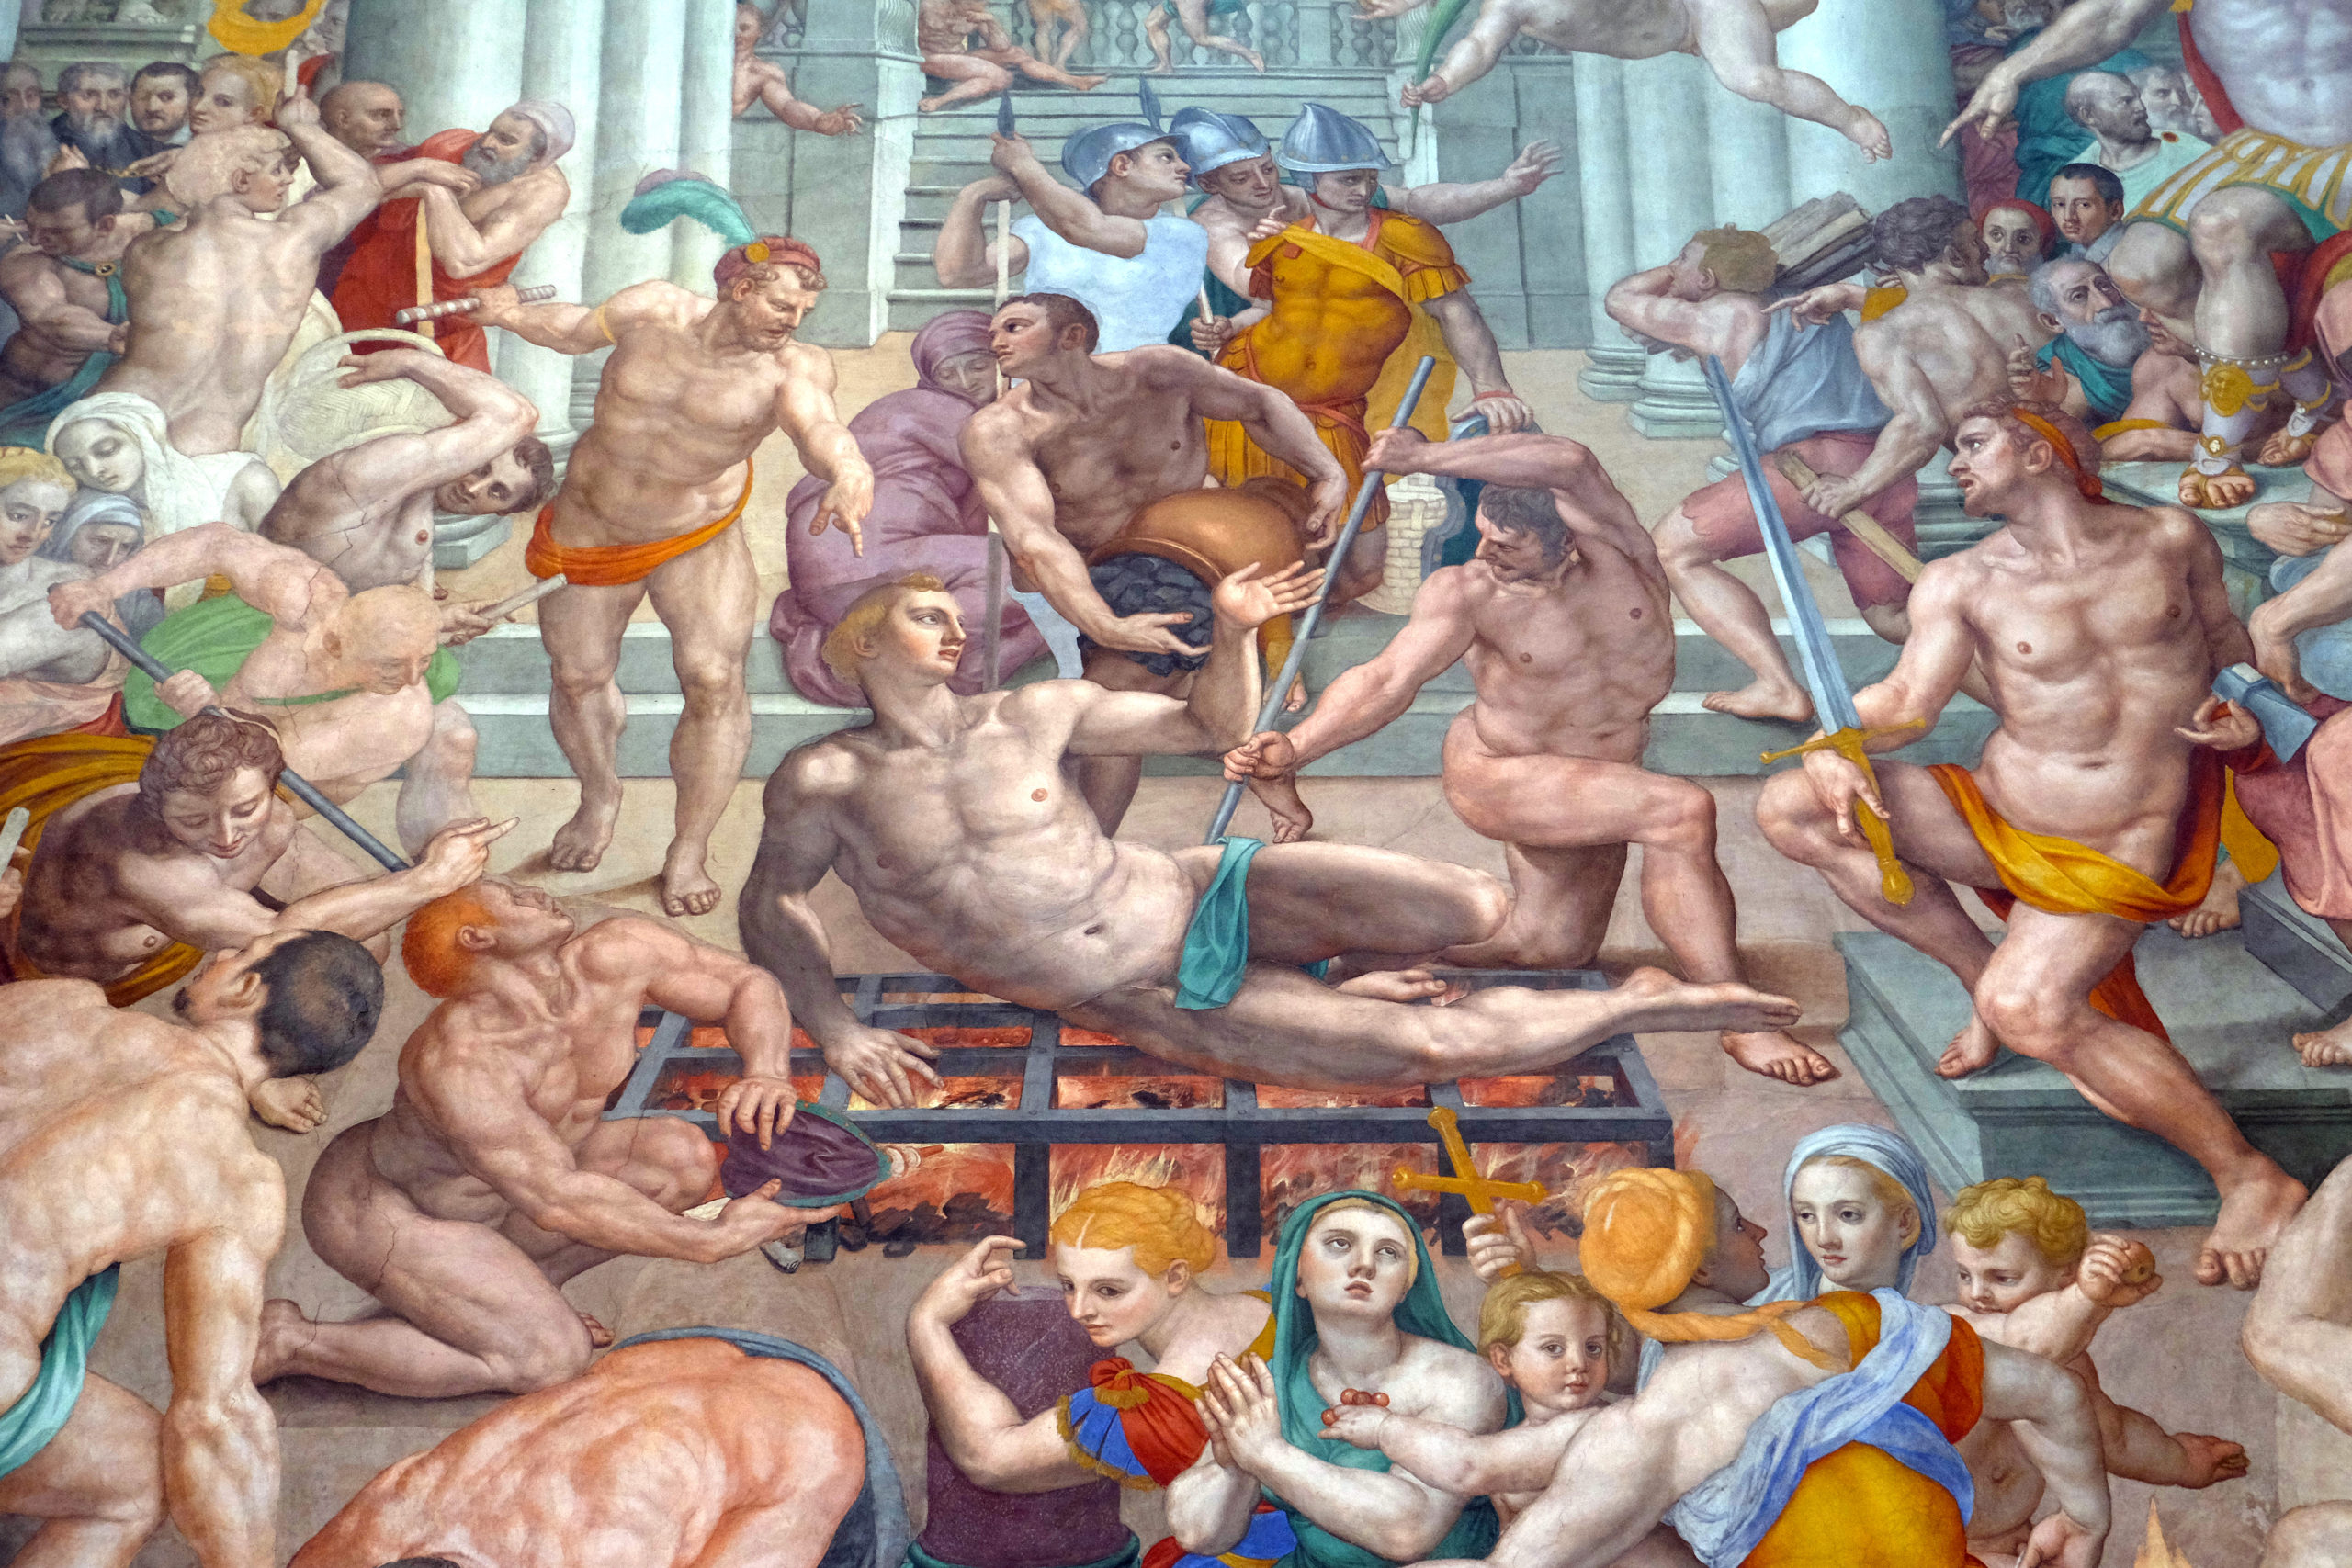 Martyrdom of Saint Lawrence, 1569, fresco by Agnolo Bronzino in the Basilica di San Lorenzo in Florence, Italy